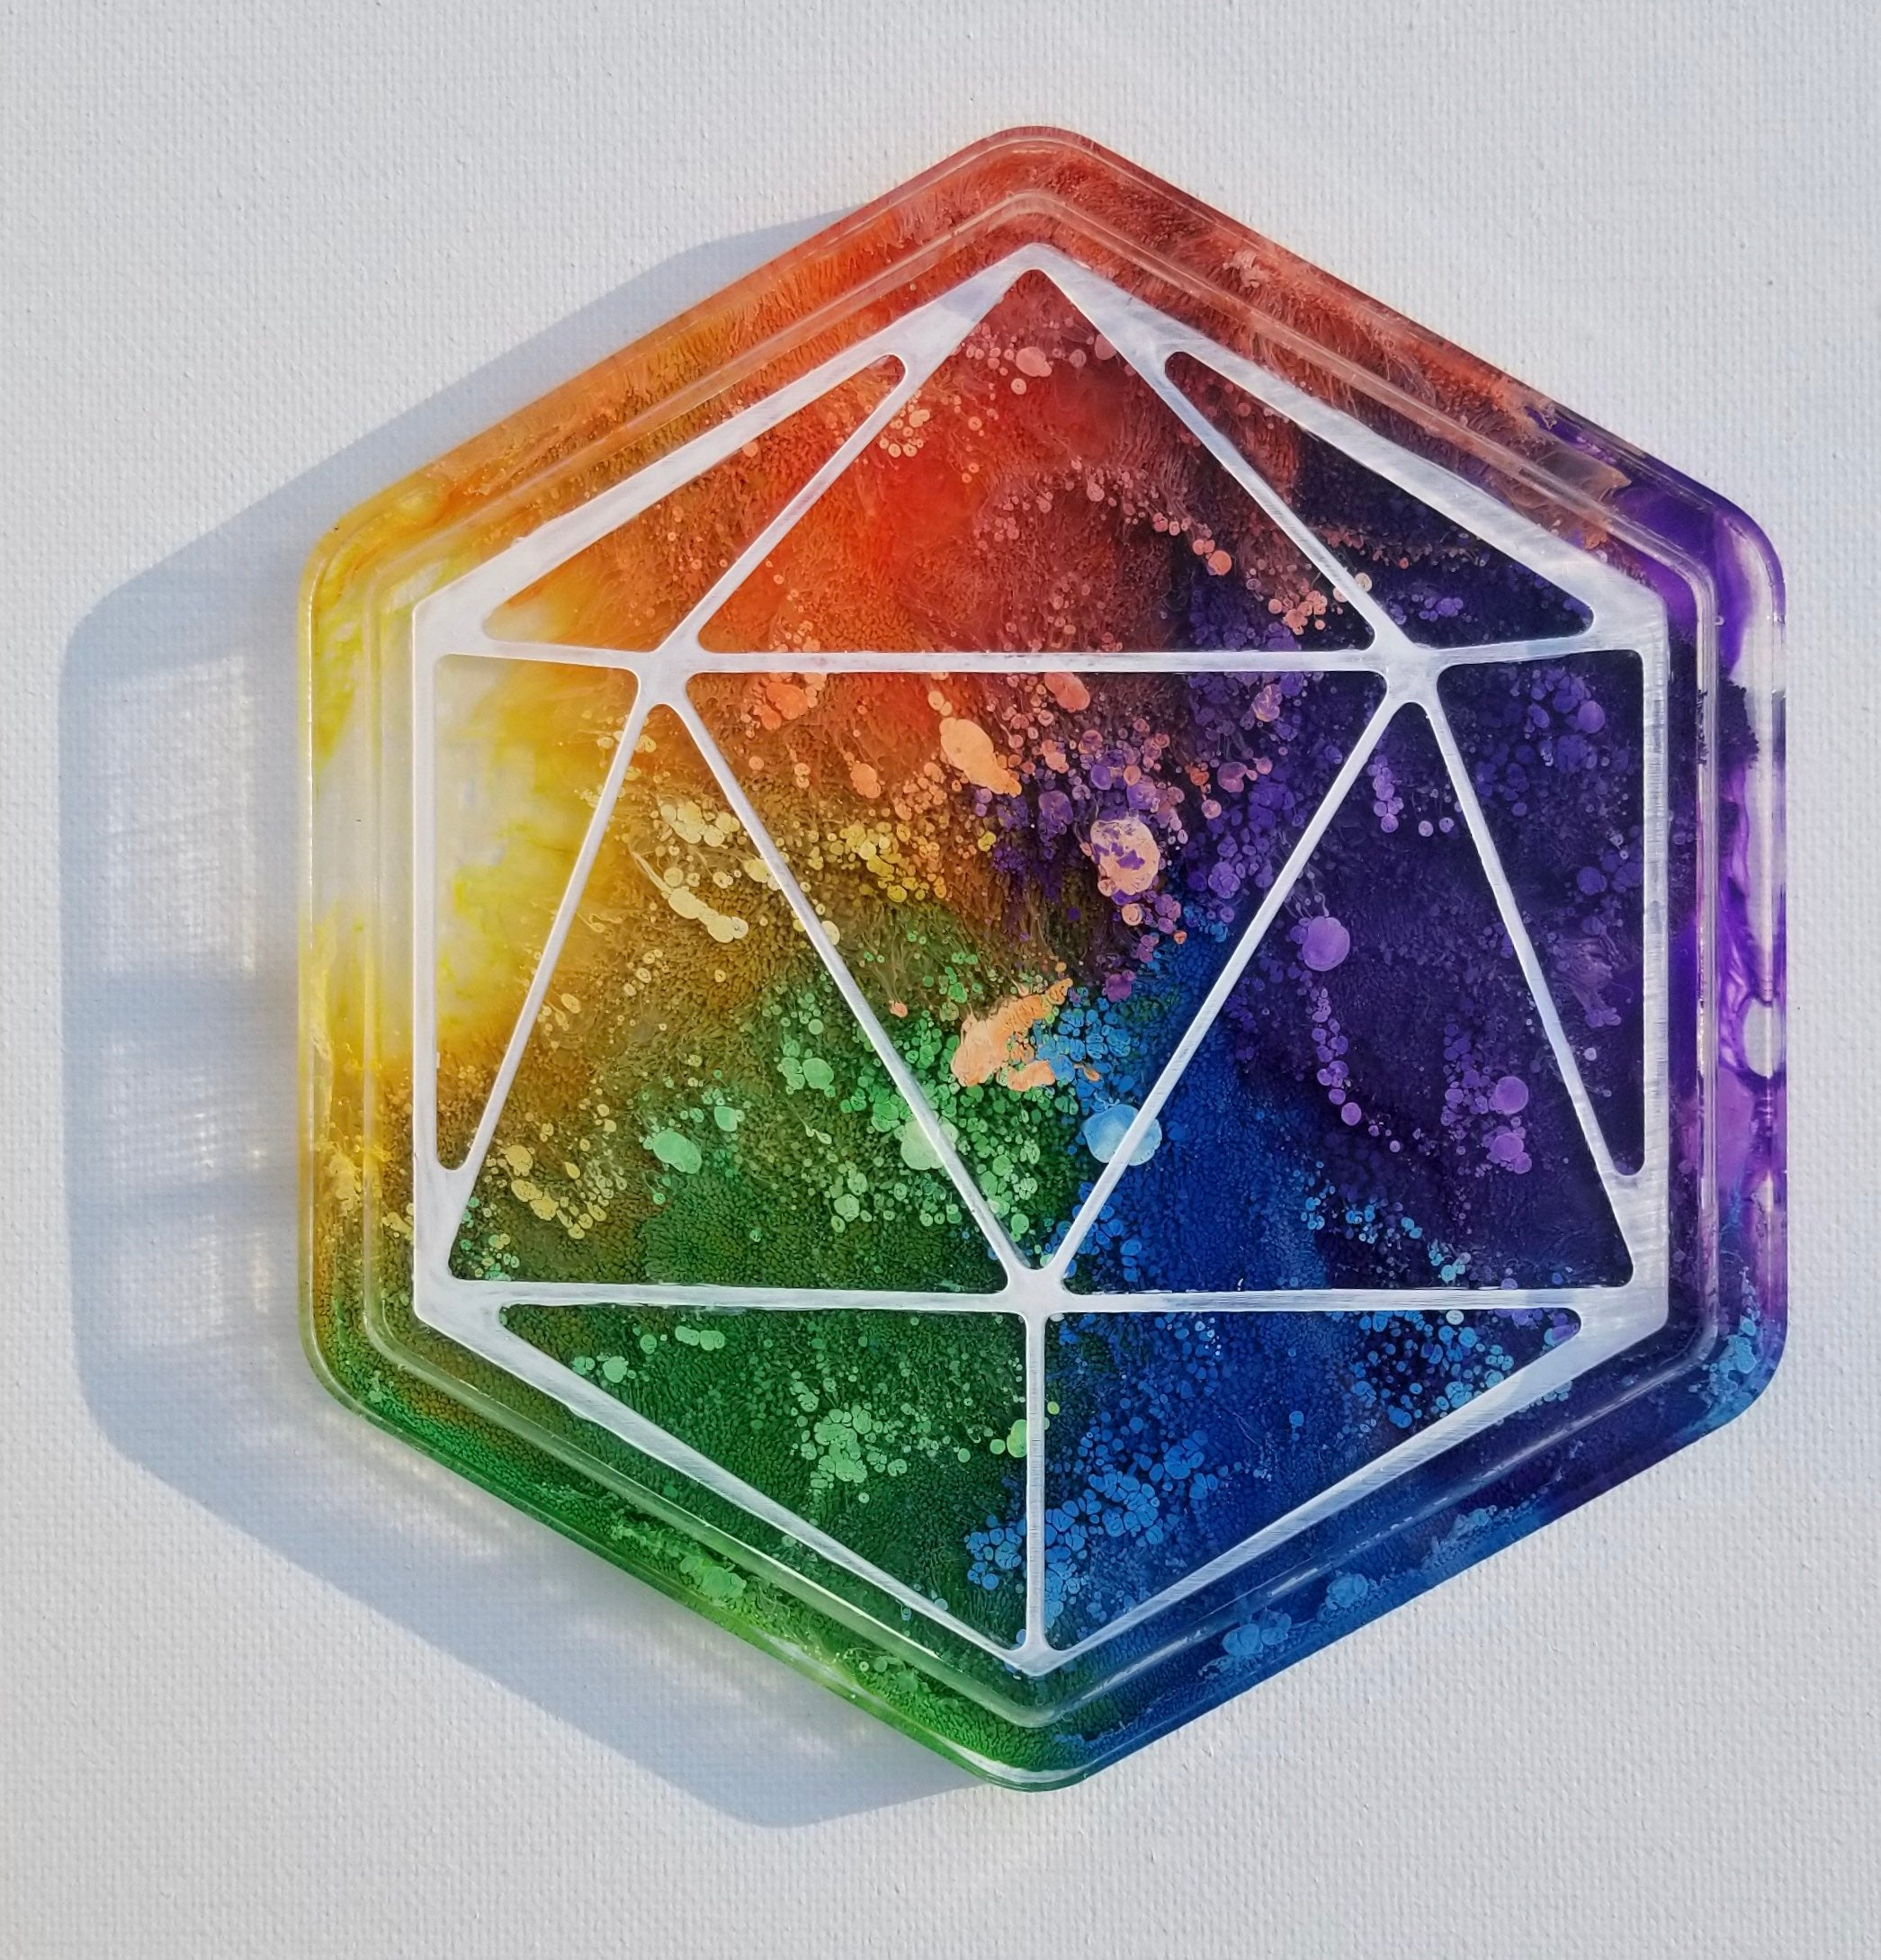 This is a handmade rainbow dice rolling tray with white ink. The rainbow colors look like sea anemone encased in clear resin.